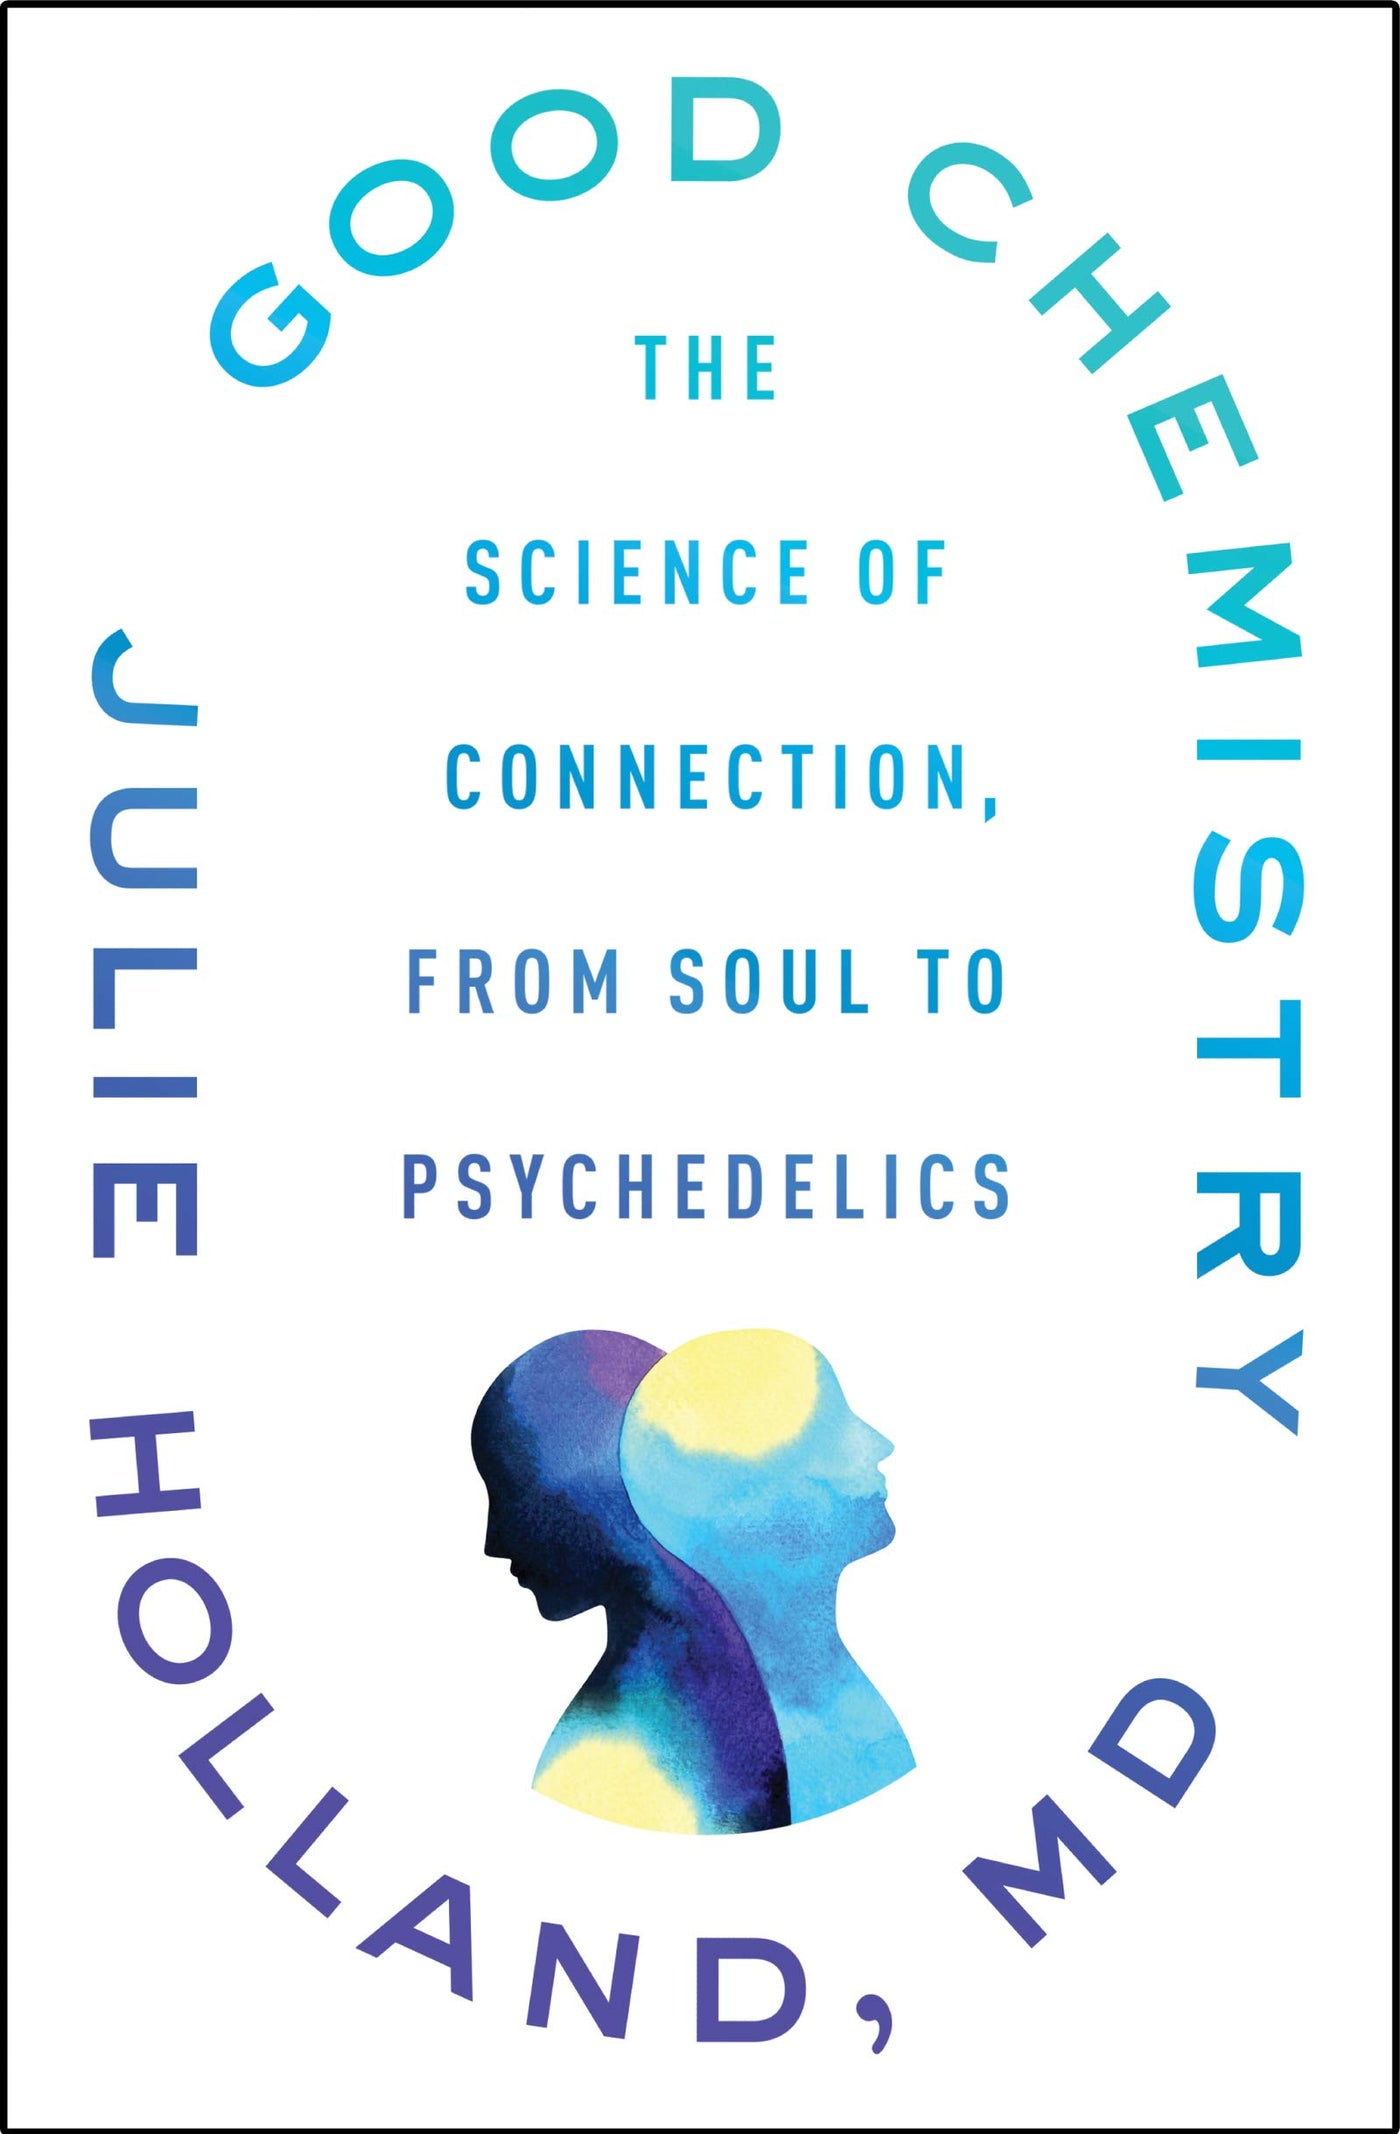 Good Chemistry: The Science of Connection, from Soul to Psychedelics by Julie Holland